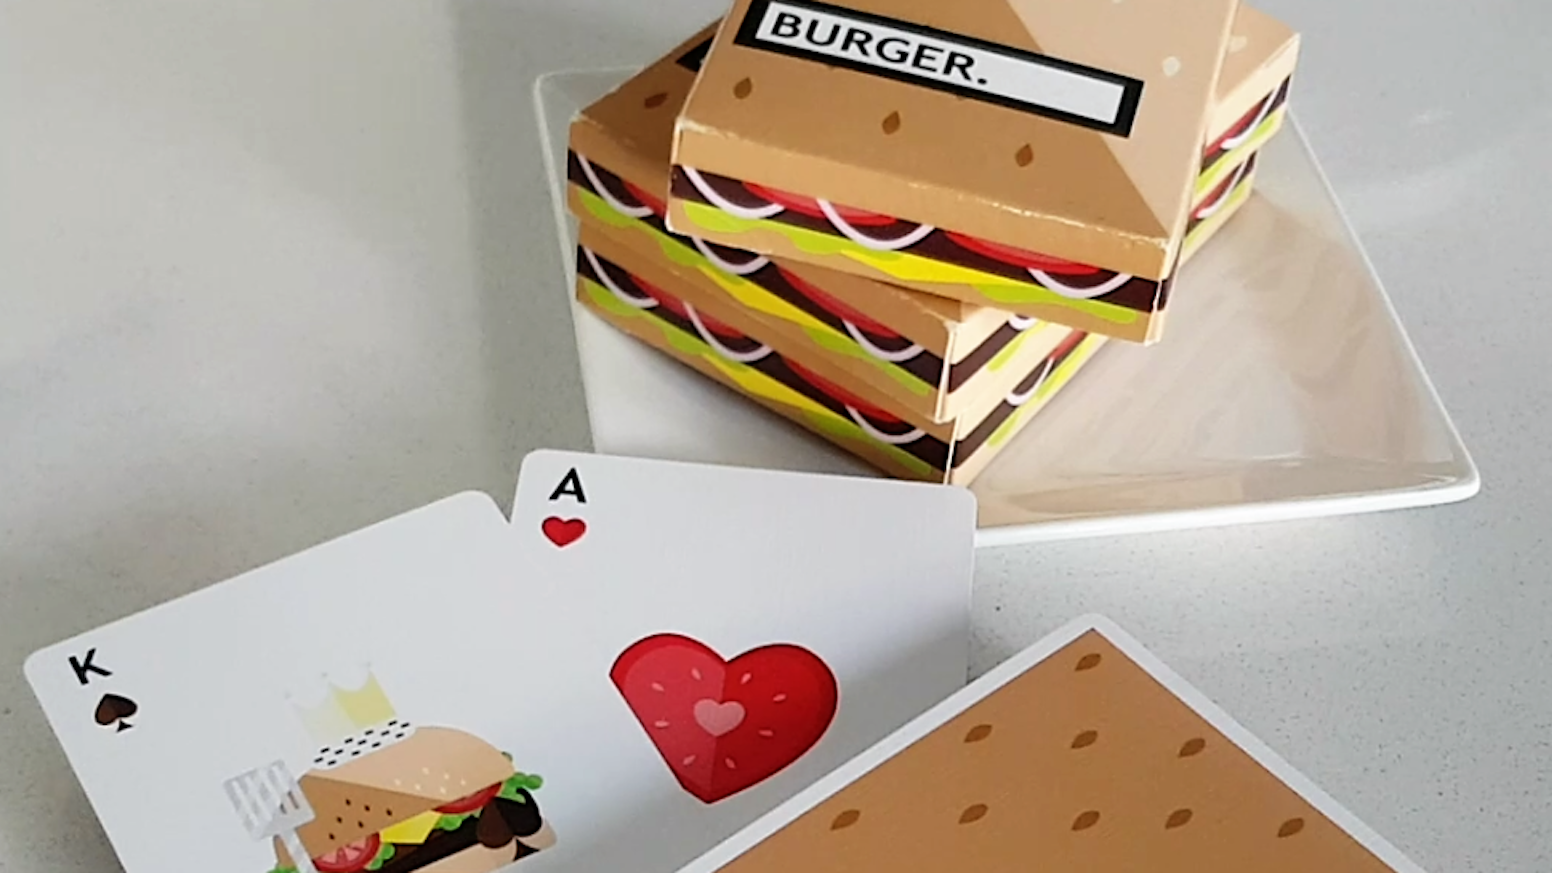 The first of the Flaminko Playing Cards' deliciousness series! BURGER cards... custom design, high quality playing cards!